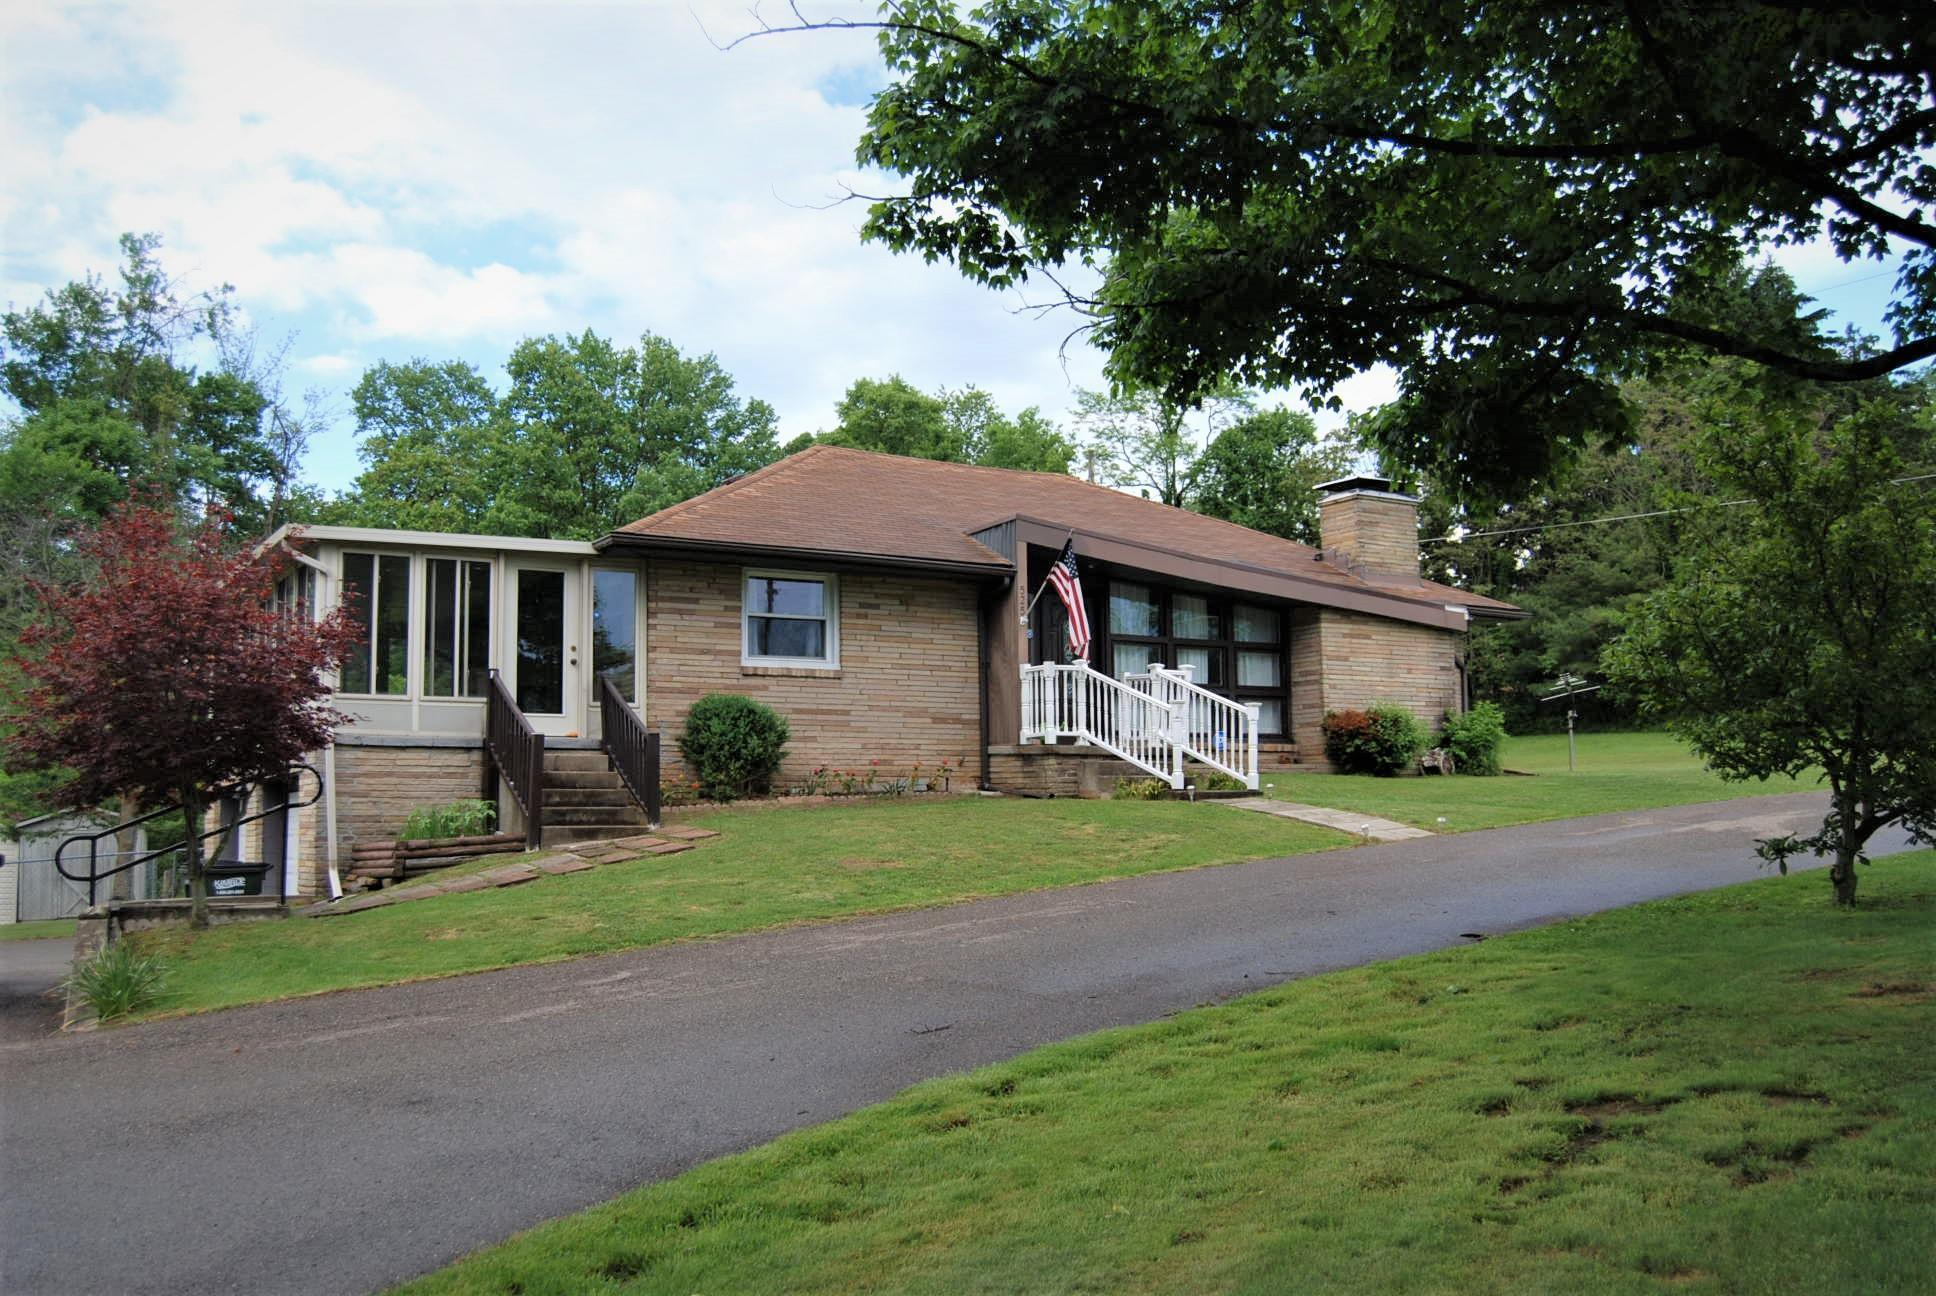 525 Military Road, Zanesville, Ohio 43701, 3 Bedrooms Bedrooms, ,3 BathroomsBathrooms,Residential,For Sale,Military,220016847